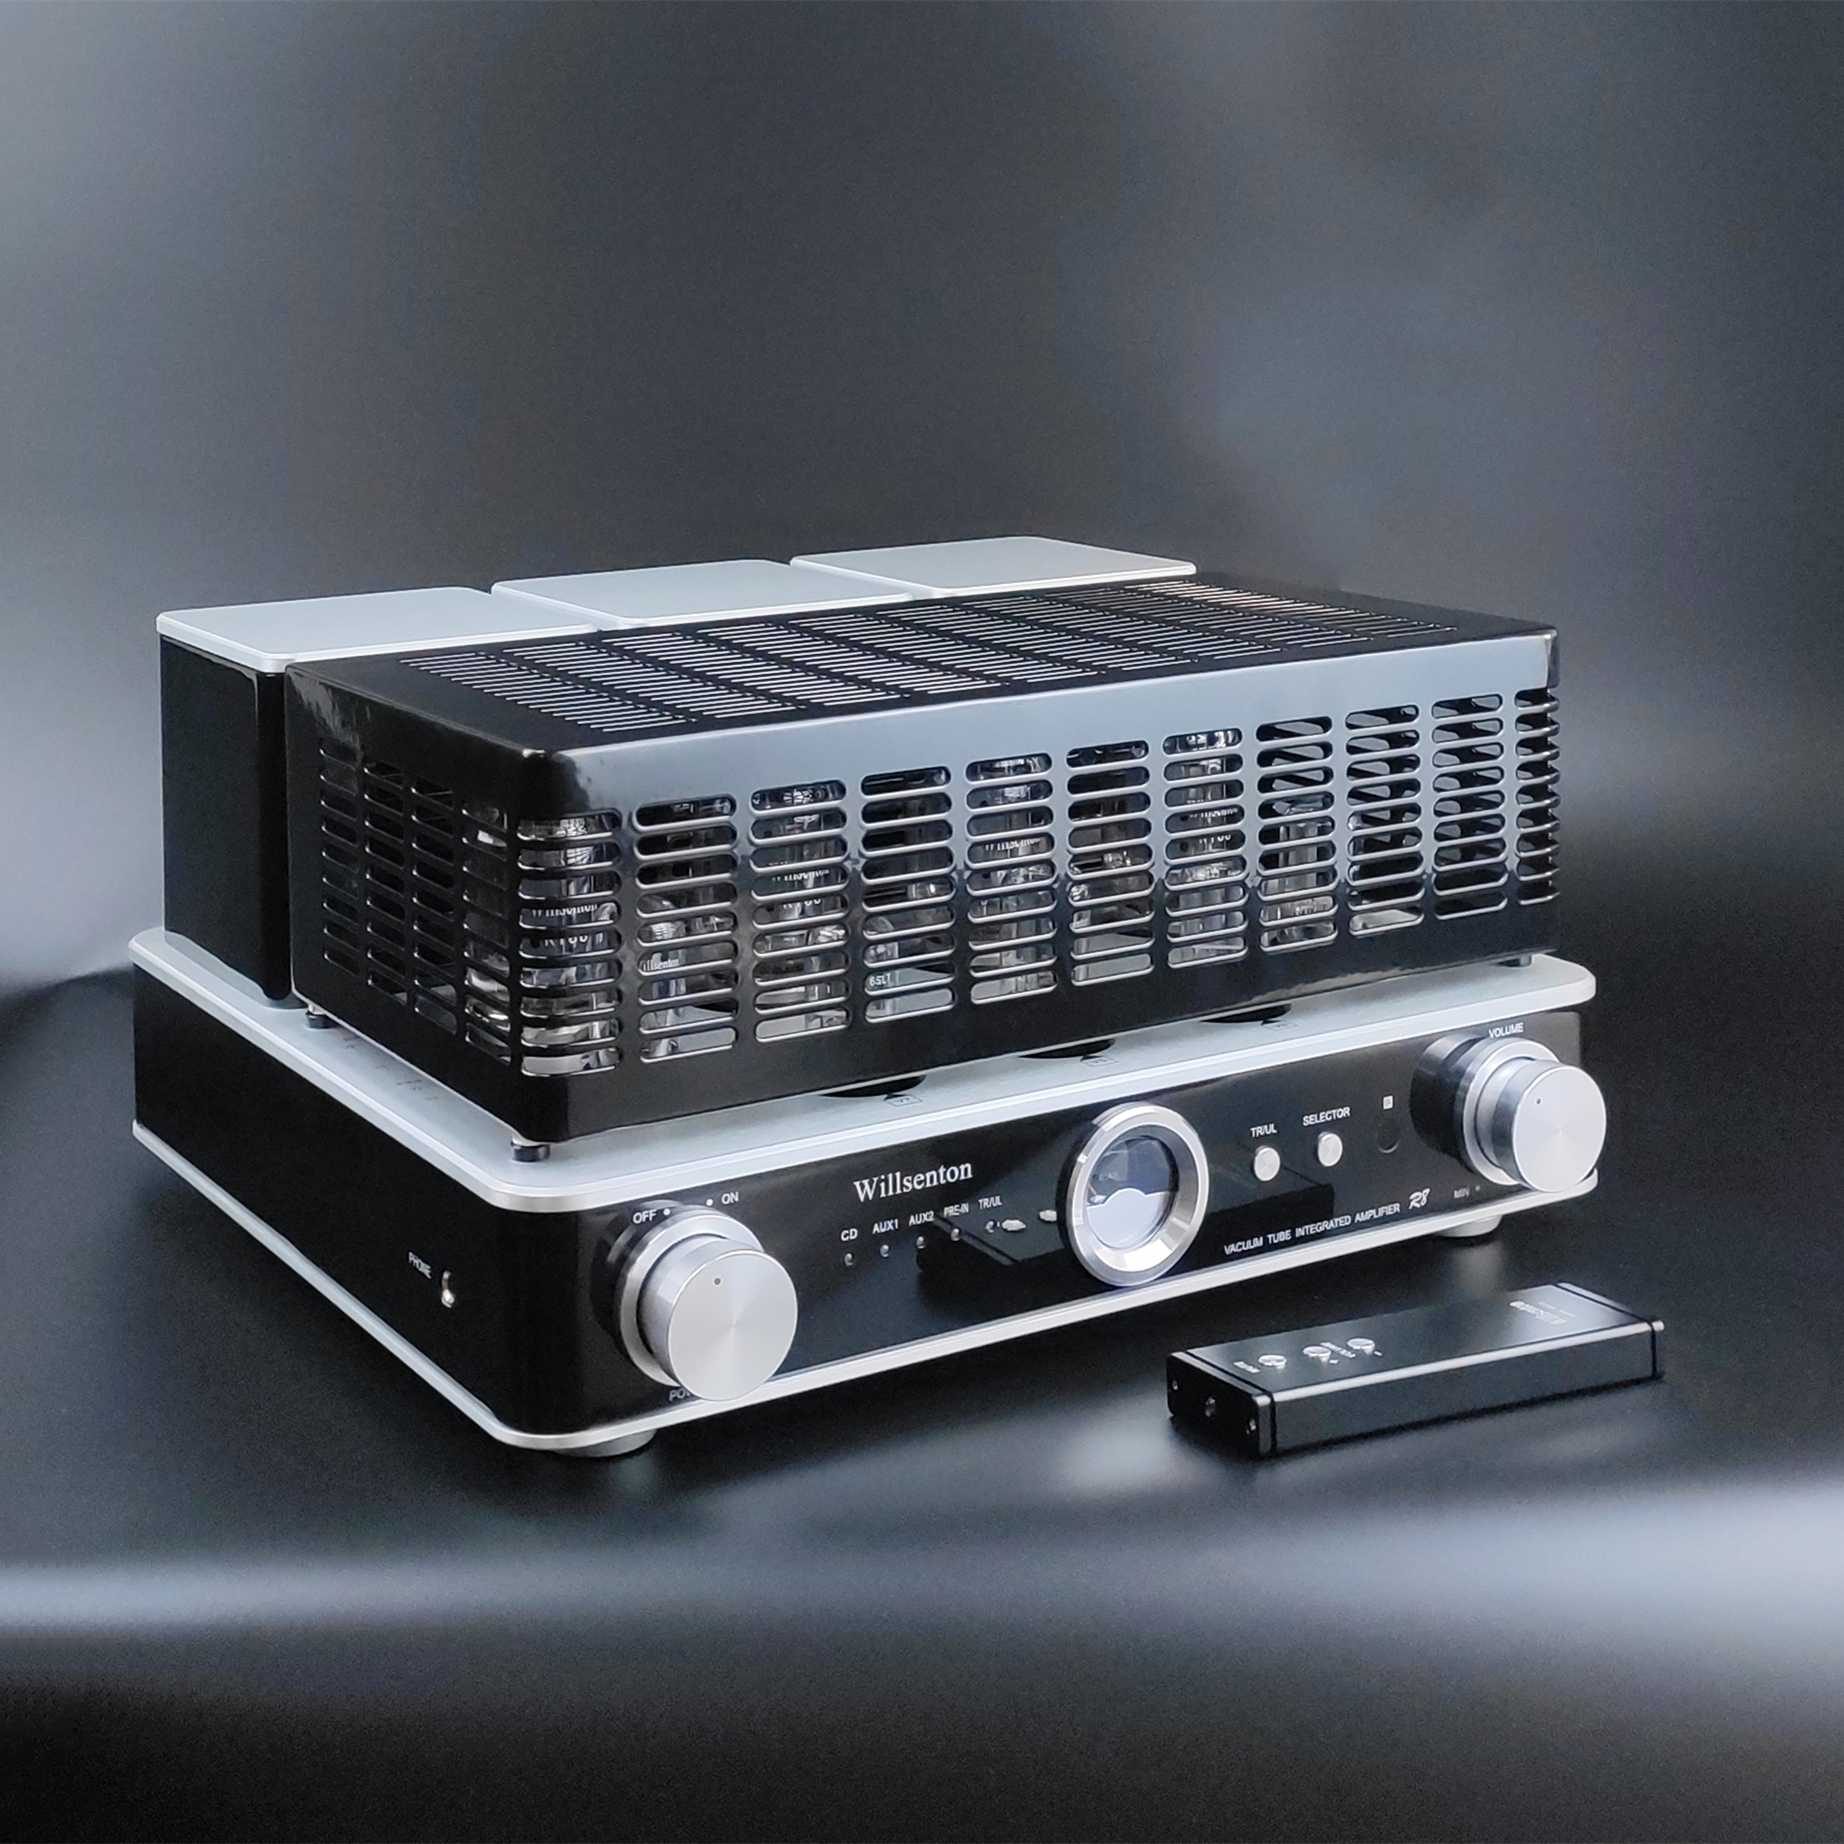 Willsenton R8 Stereo Amplifier Tabung KT88x4 atau EL34 * 4 Integrated Amplifier dan Power Amplifier & HEADPHONE AMP Semua Dalam satu